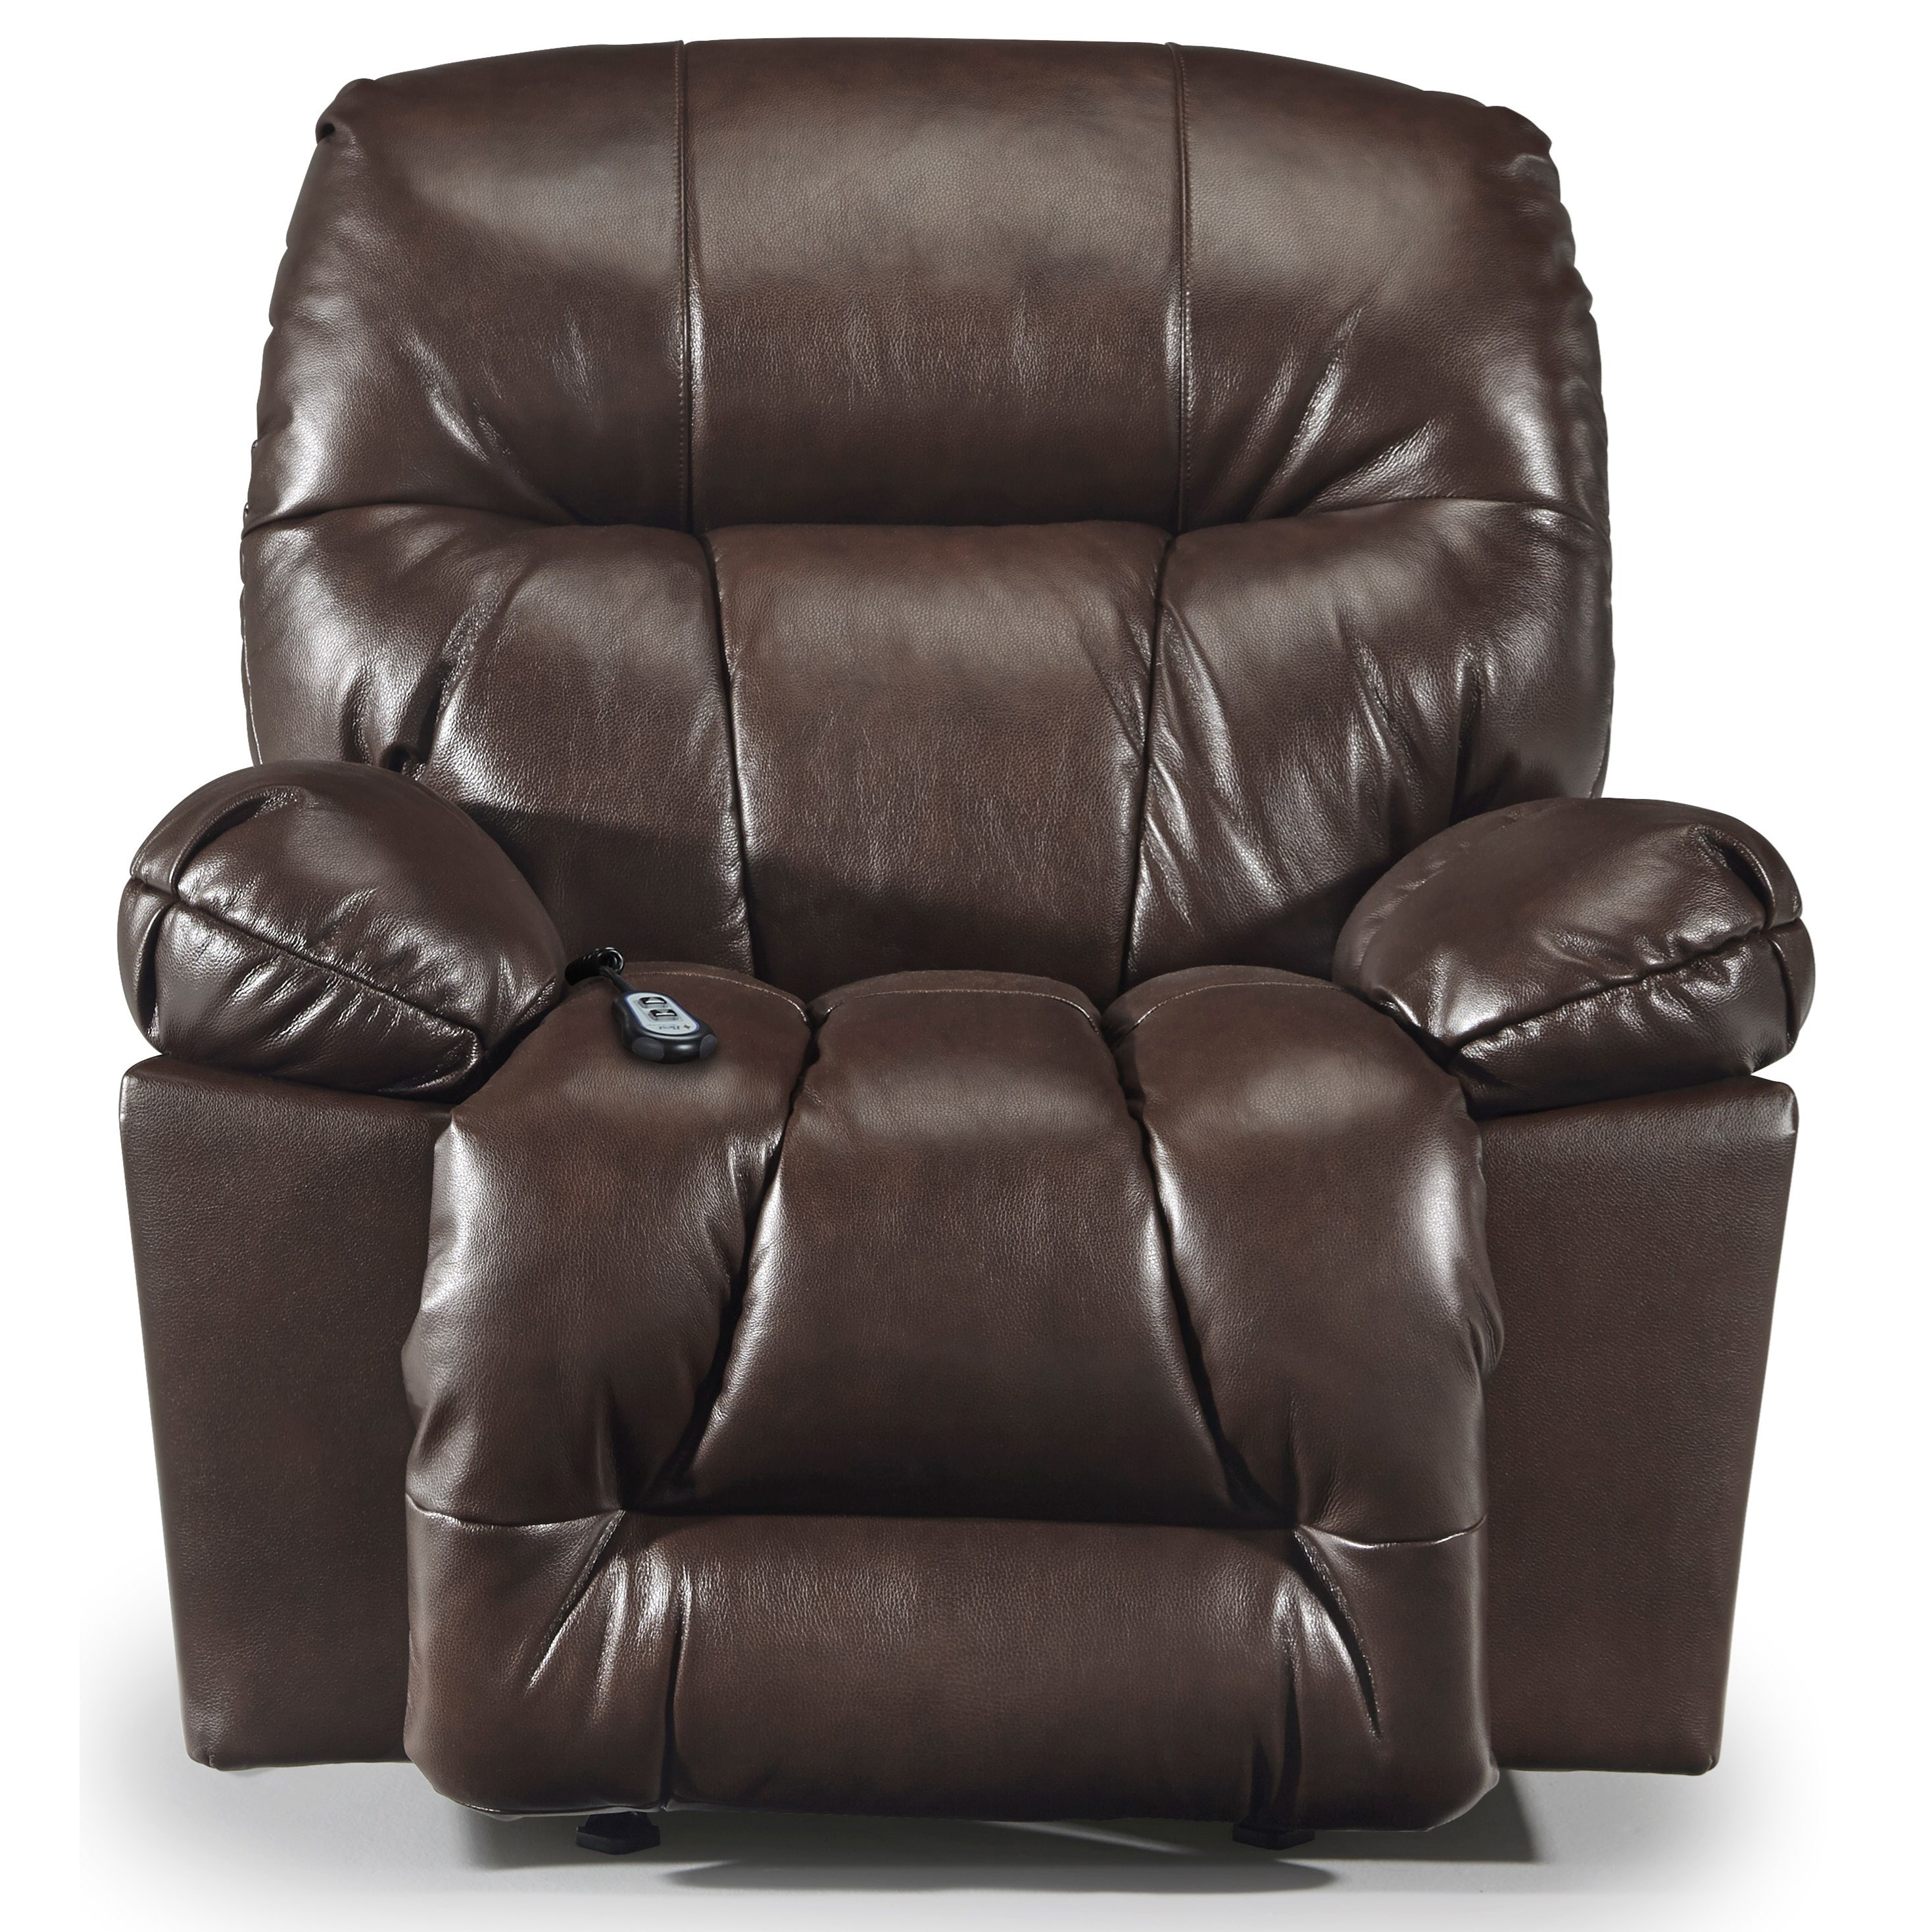 Retreat Power Swivel Glide Recliner by Best Home Furnishings at Baer's Furniture